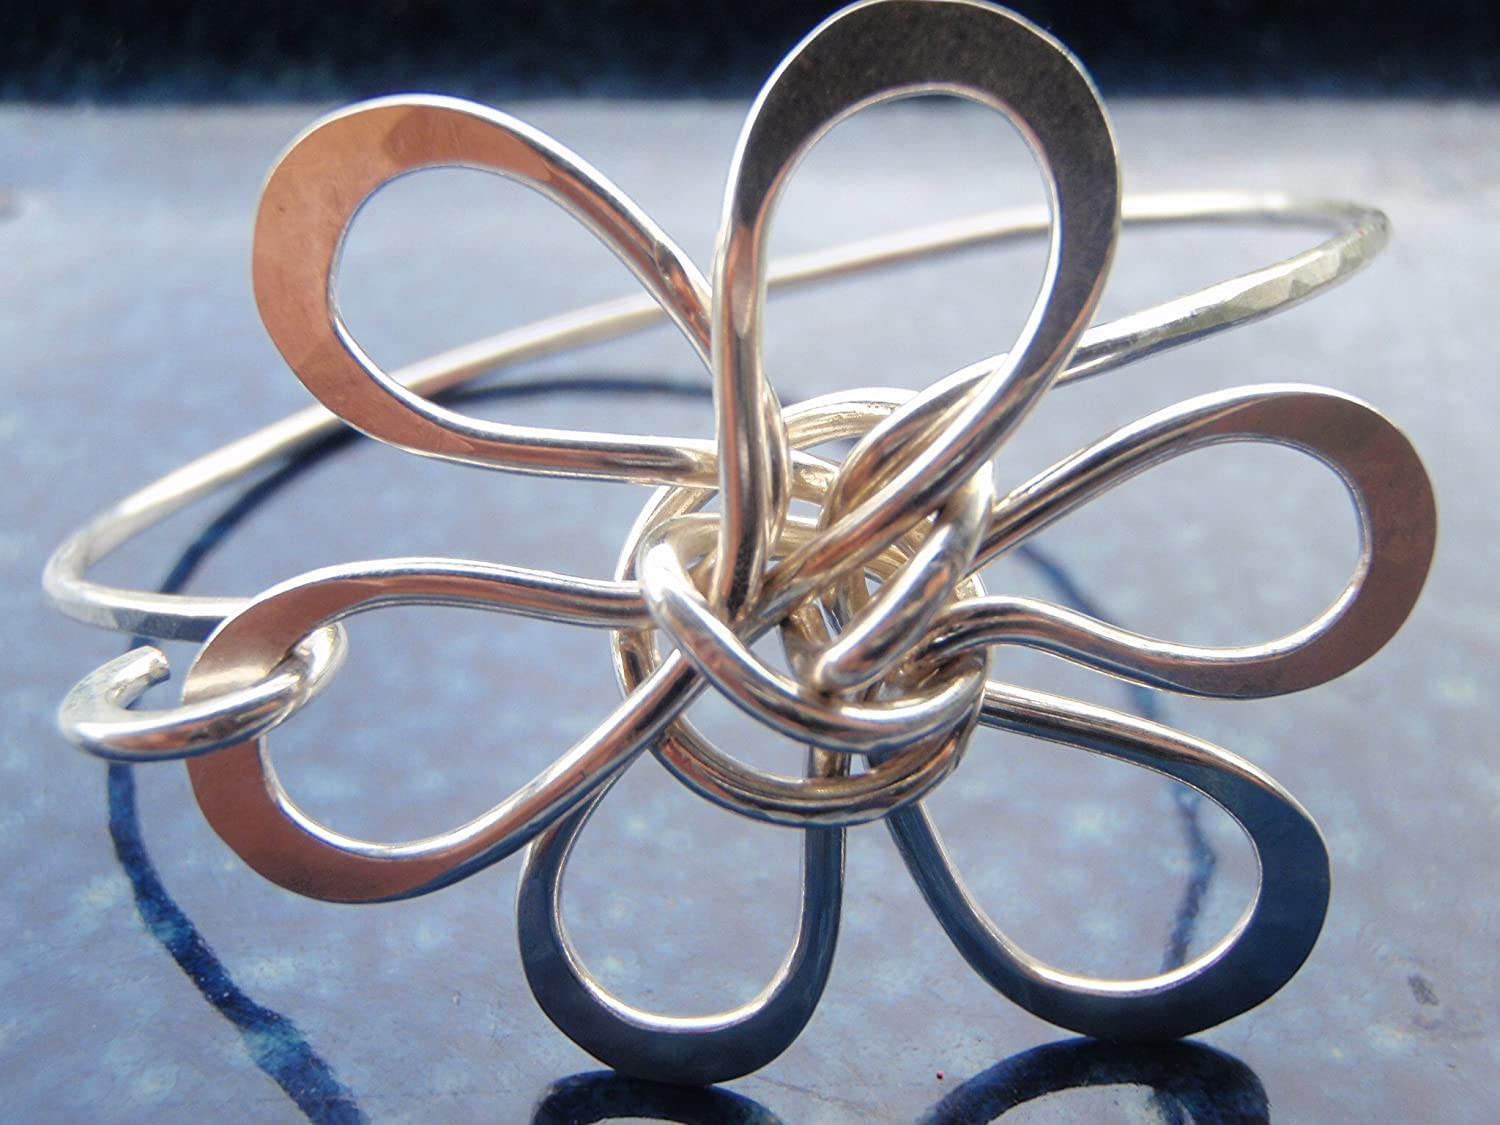 Handcrafted Plumeria Design Bracelet Silver Manufacturer Indianapolis Mall OFFicial shop